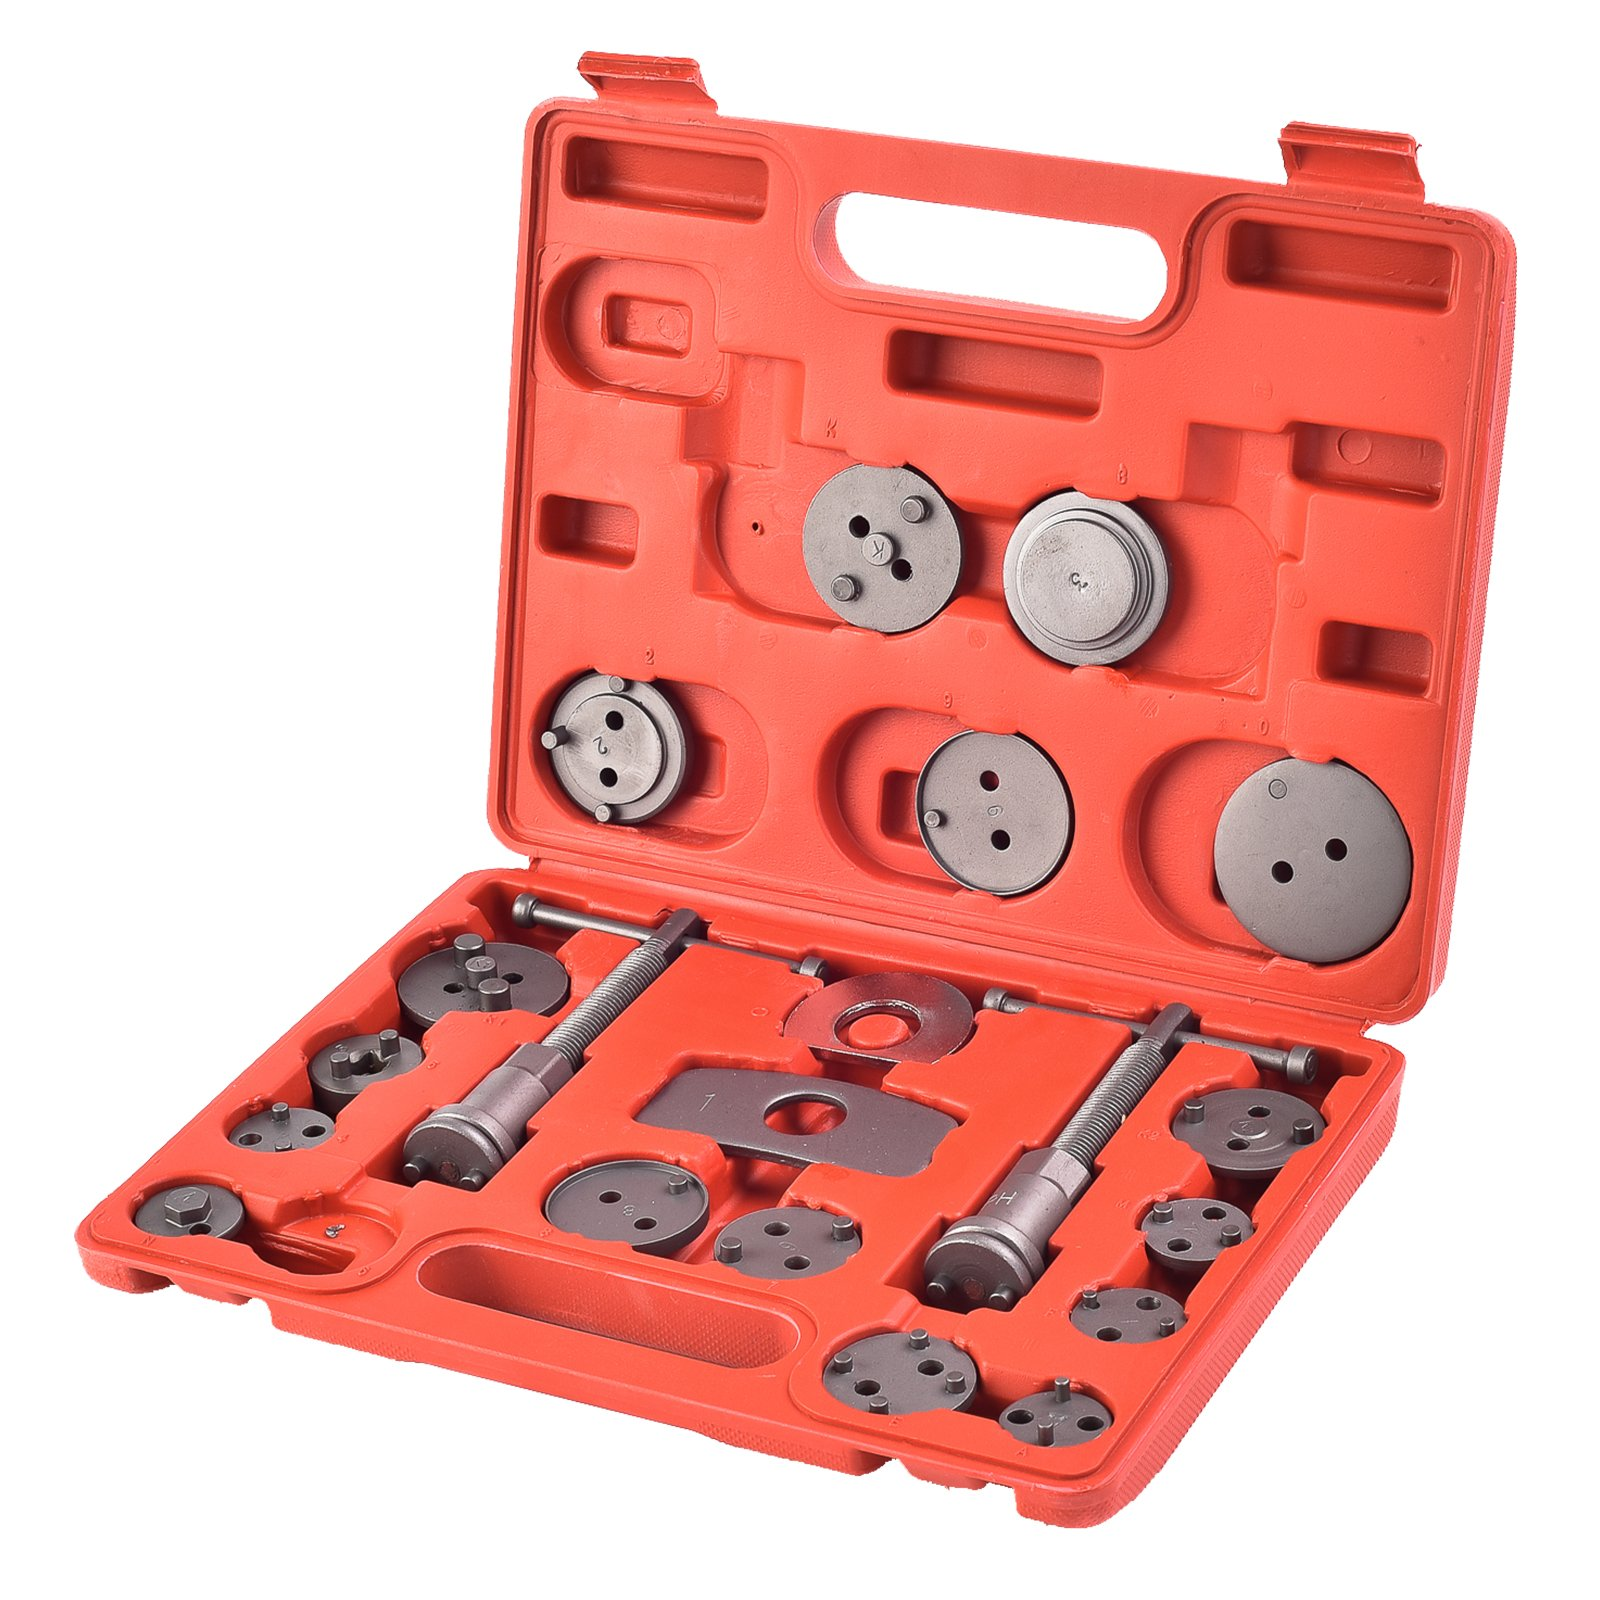 SUNCOO Disc Brake Caliper bolt assemblies Tool Kit Set Wind Back for 4 wheel drive cars/trucks 21 pcs